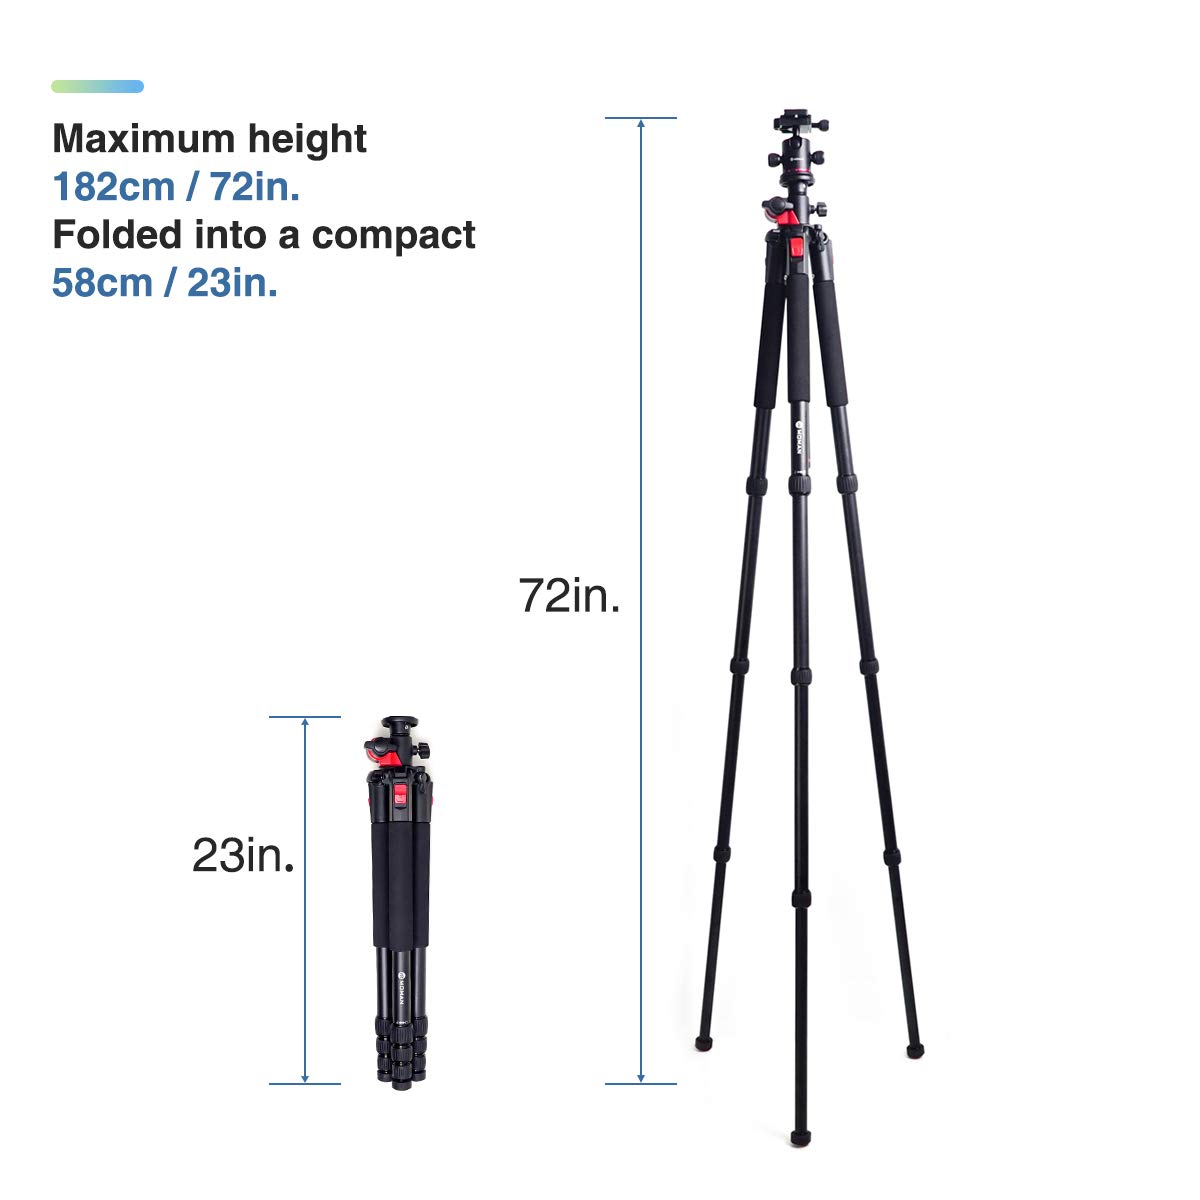 Moman Camera Tripod with Telescopic Horizontal Column Arm and Ball Head for Macro Shoot/Overhead Photography/Travel / DSLR Camera Video Camcorder by Moman (Image #4)